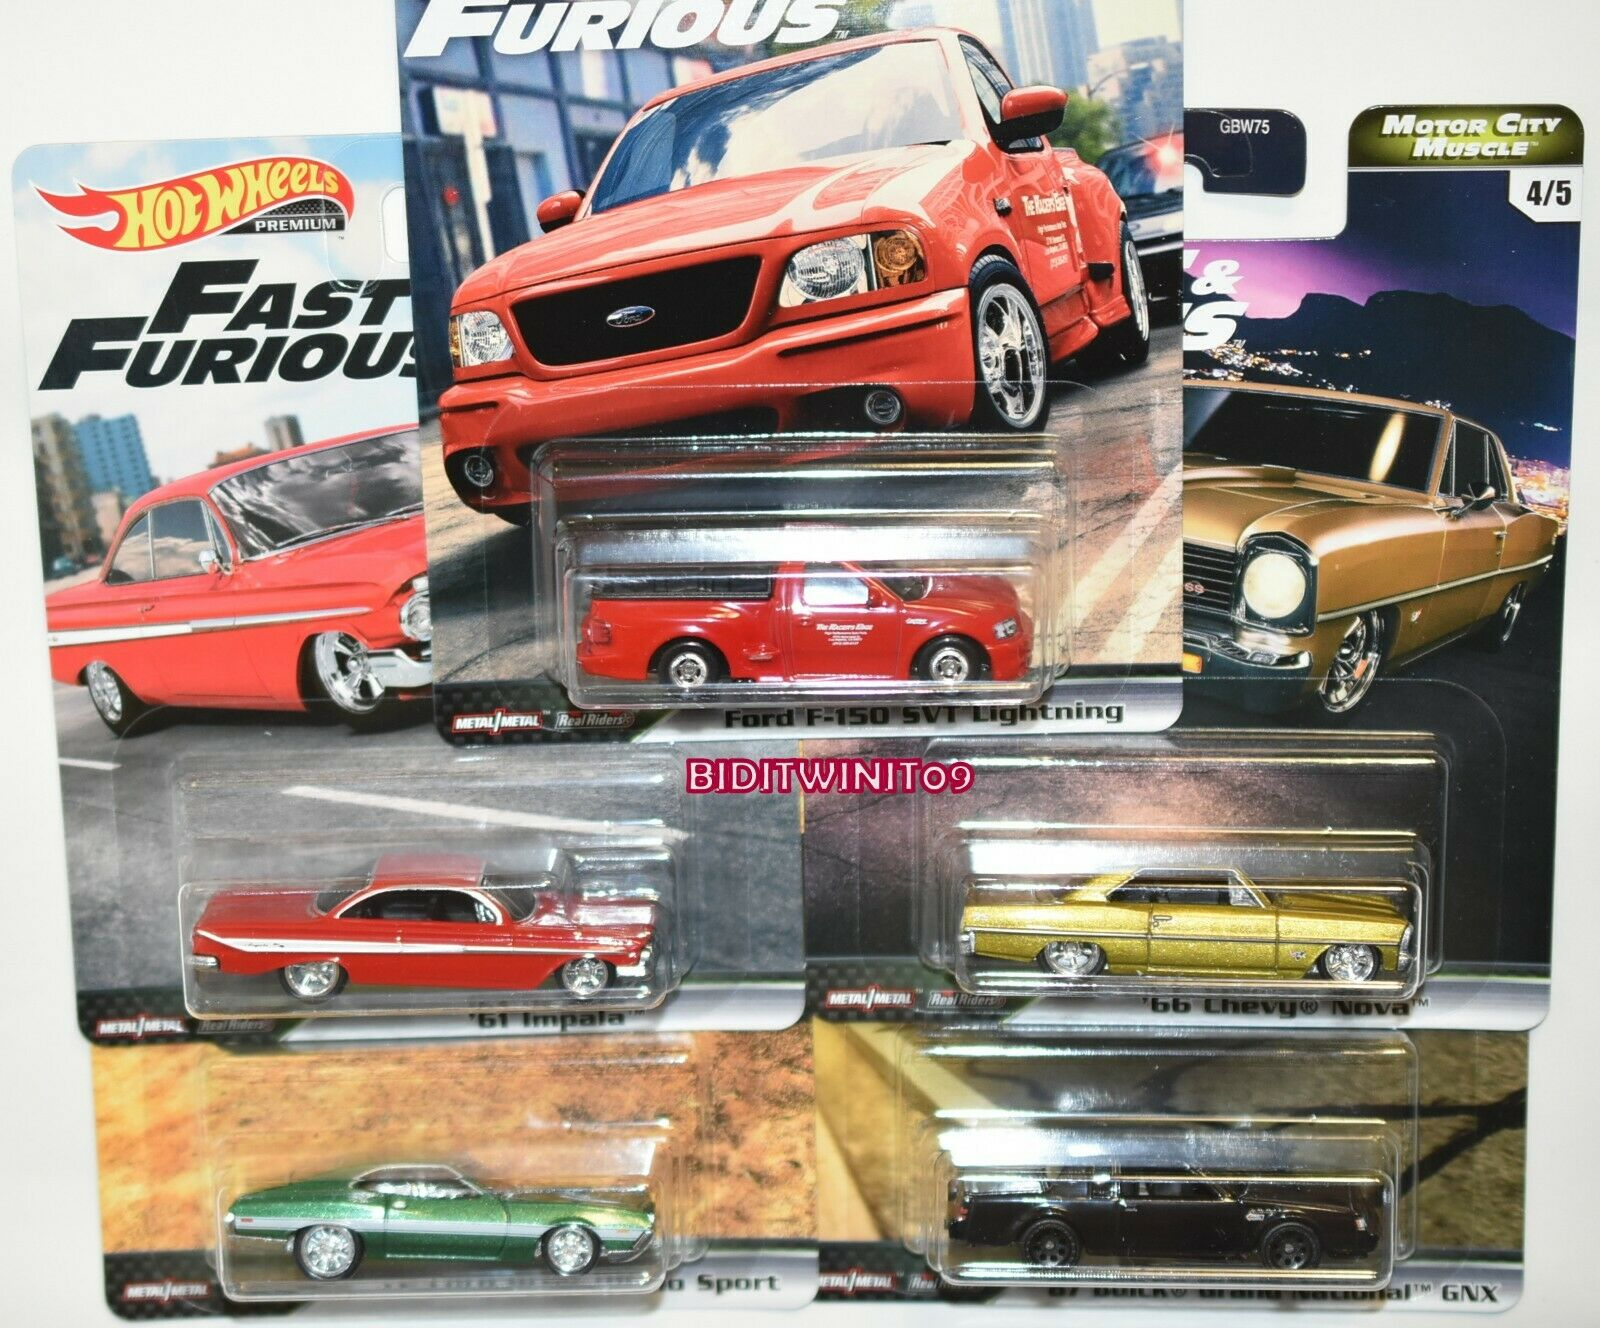 HOT WHEELS 2020 FAST & FURIOUS PREMIUM SET 5 CAR MOTOR CITY MUSCLE CHEVY FORD